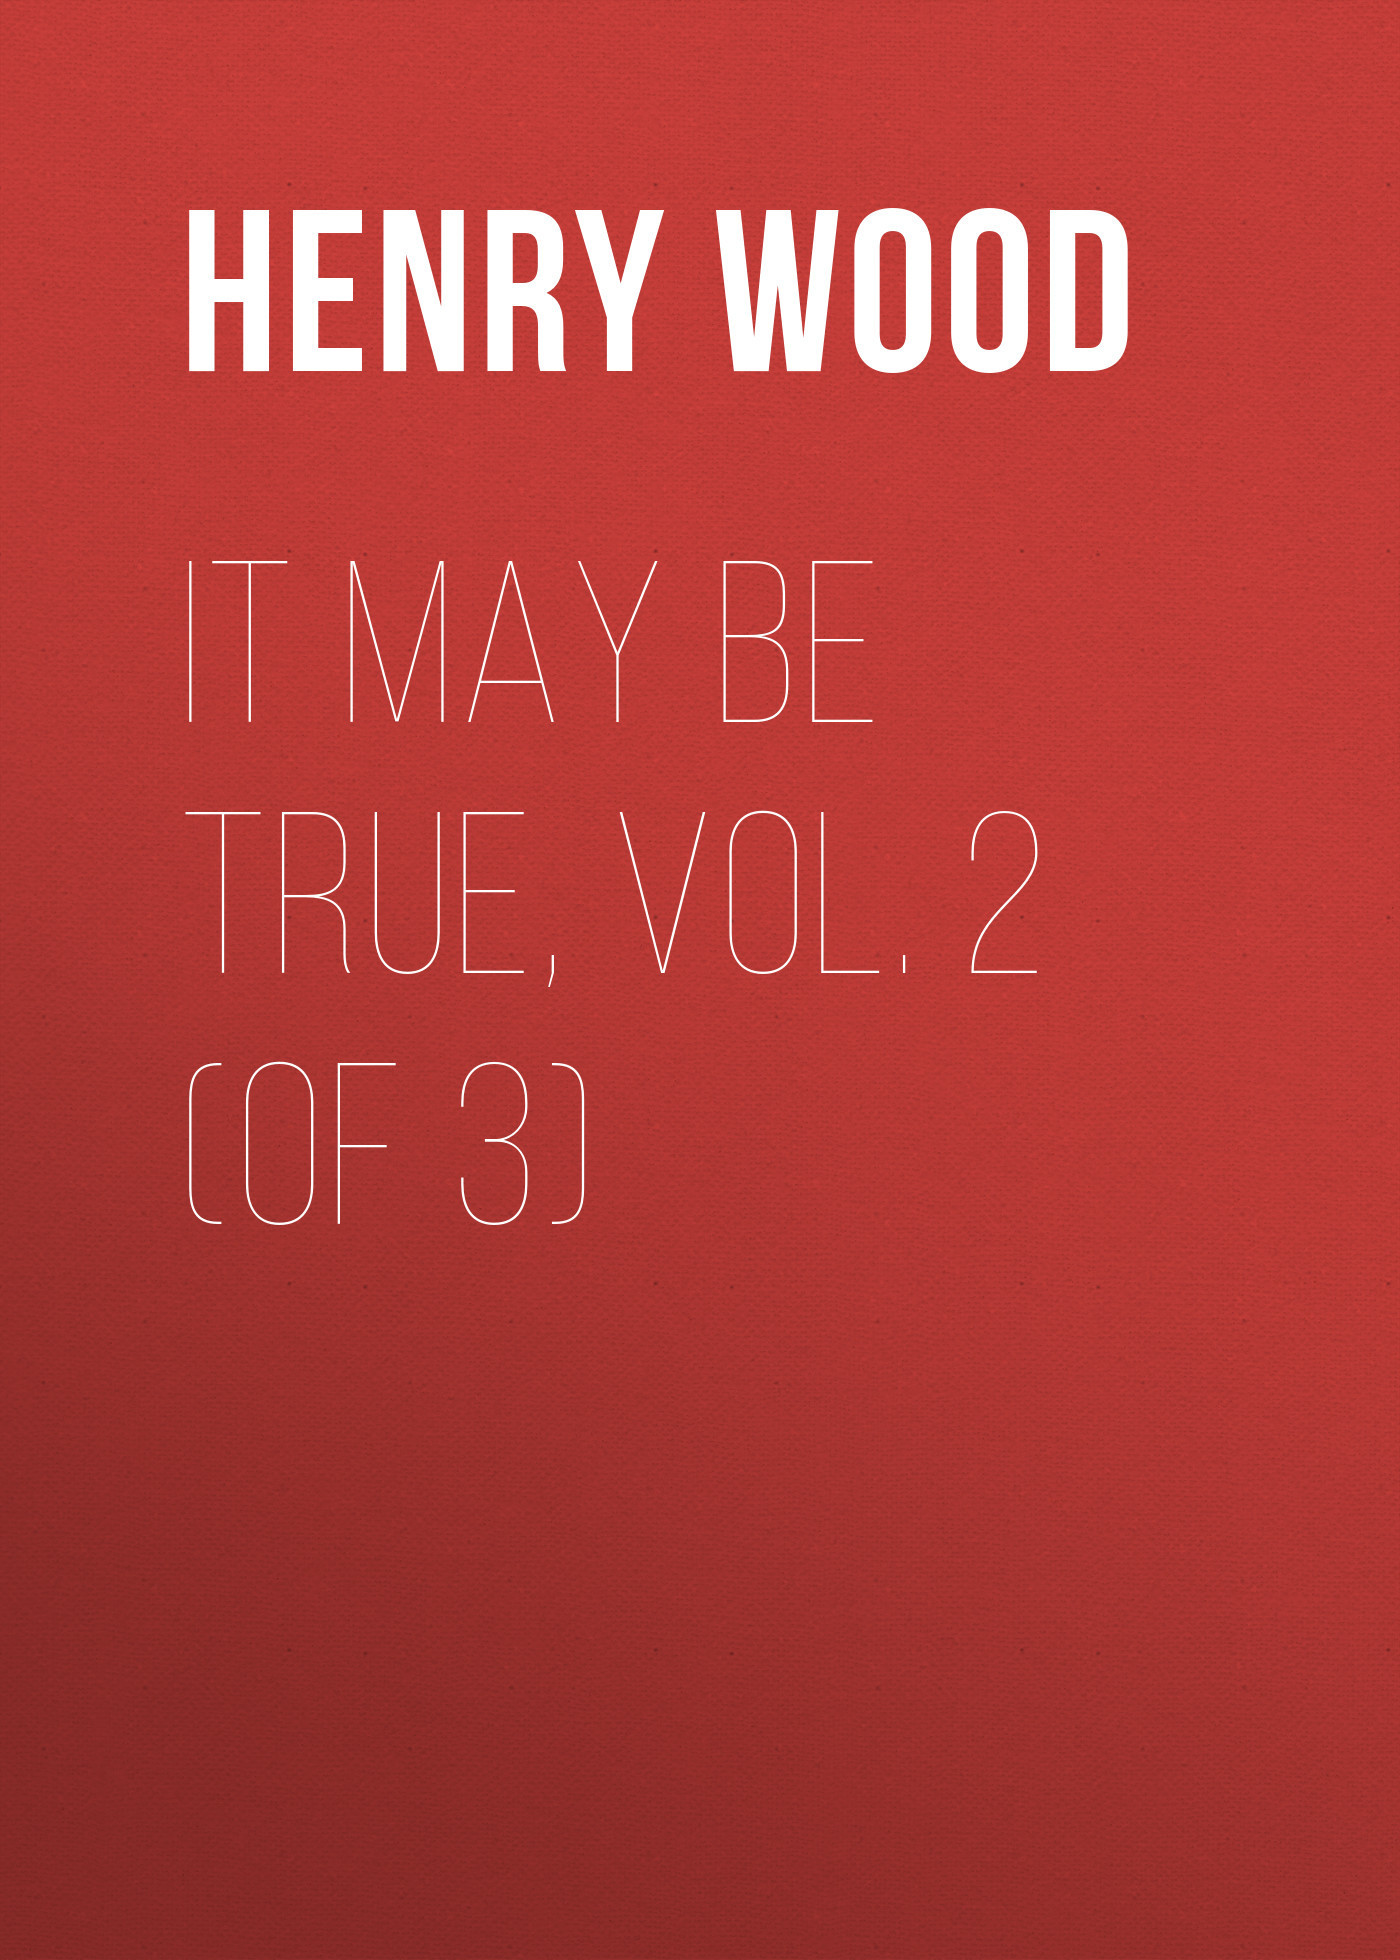 Henry Wood It May Be True, Vol. 2 (of 3) henry wood mildred arkell vol 3 of 3